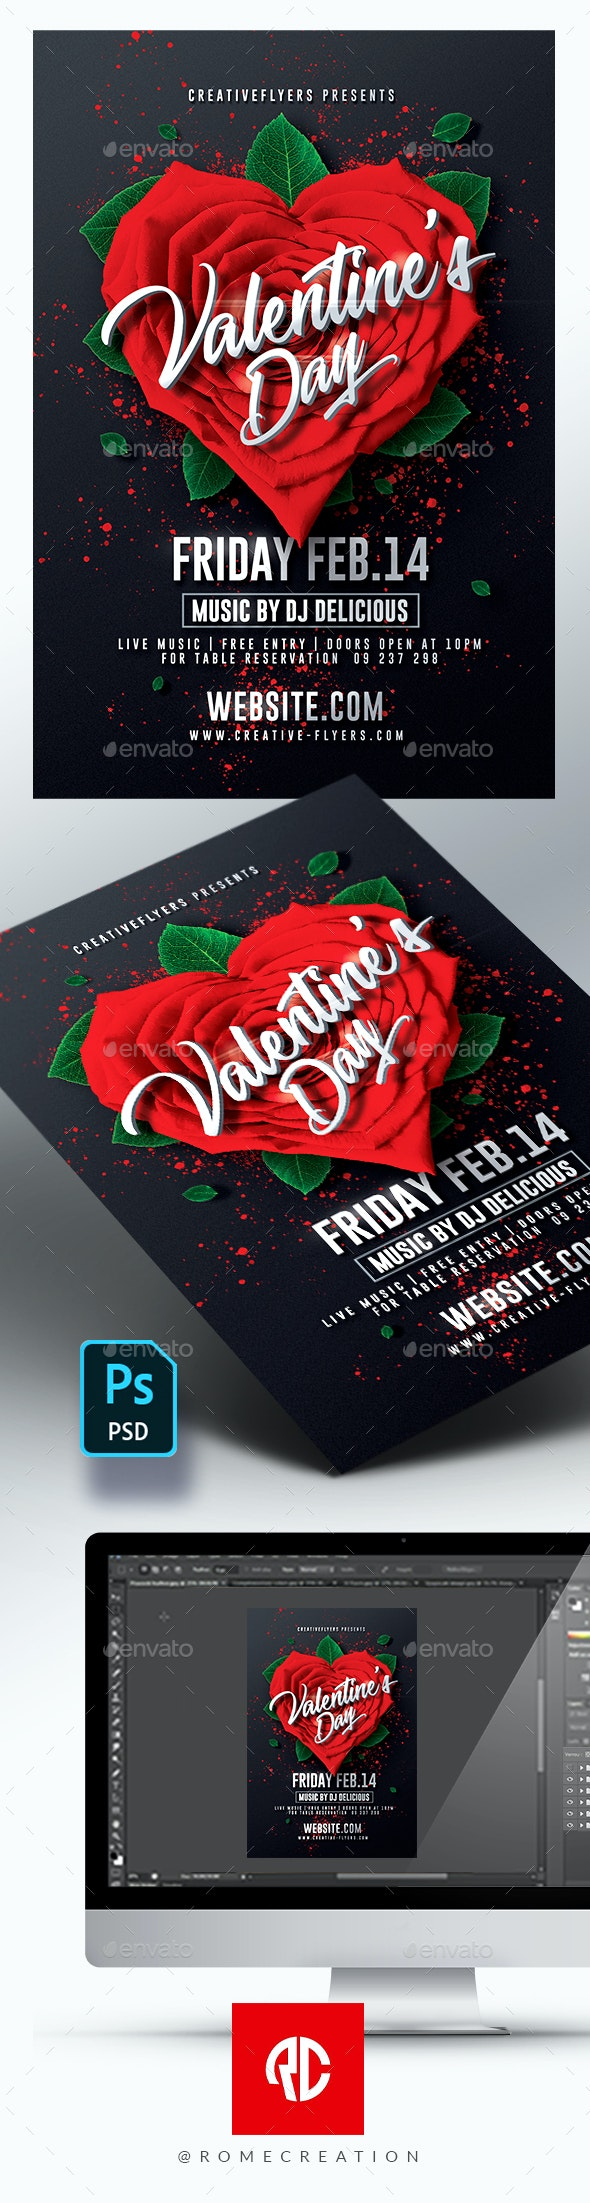 Valentine's Day Invitation Flyer - Events Flyers